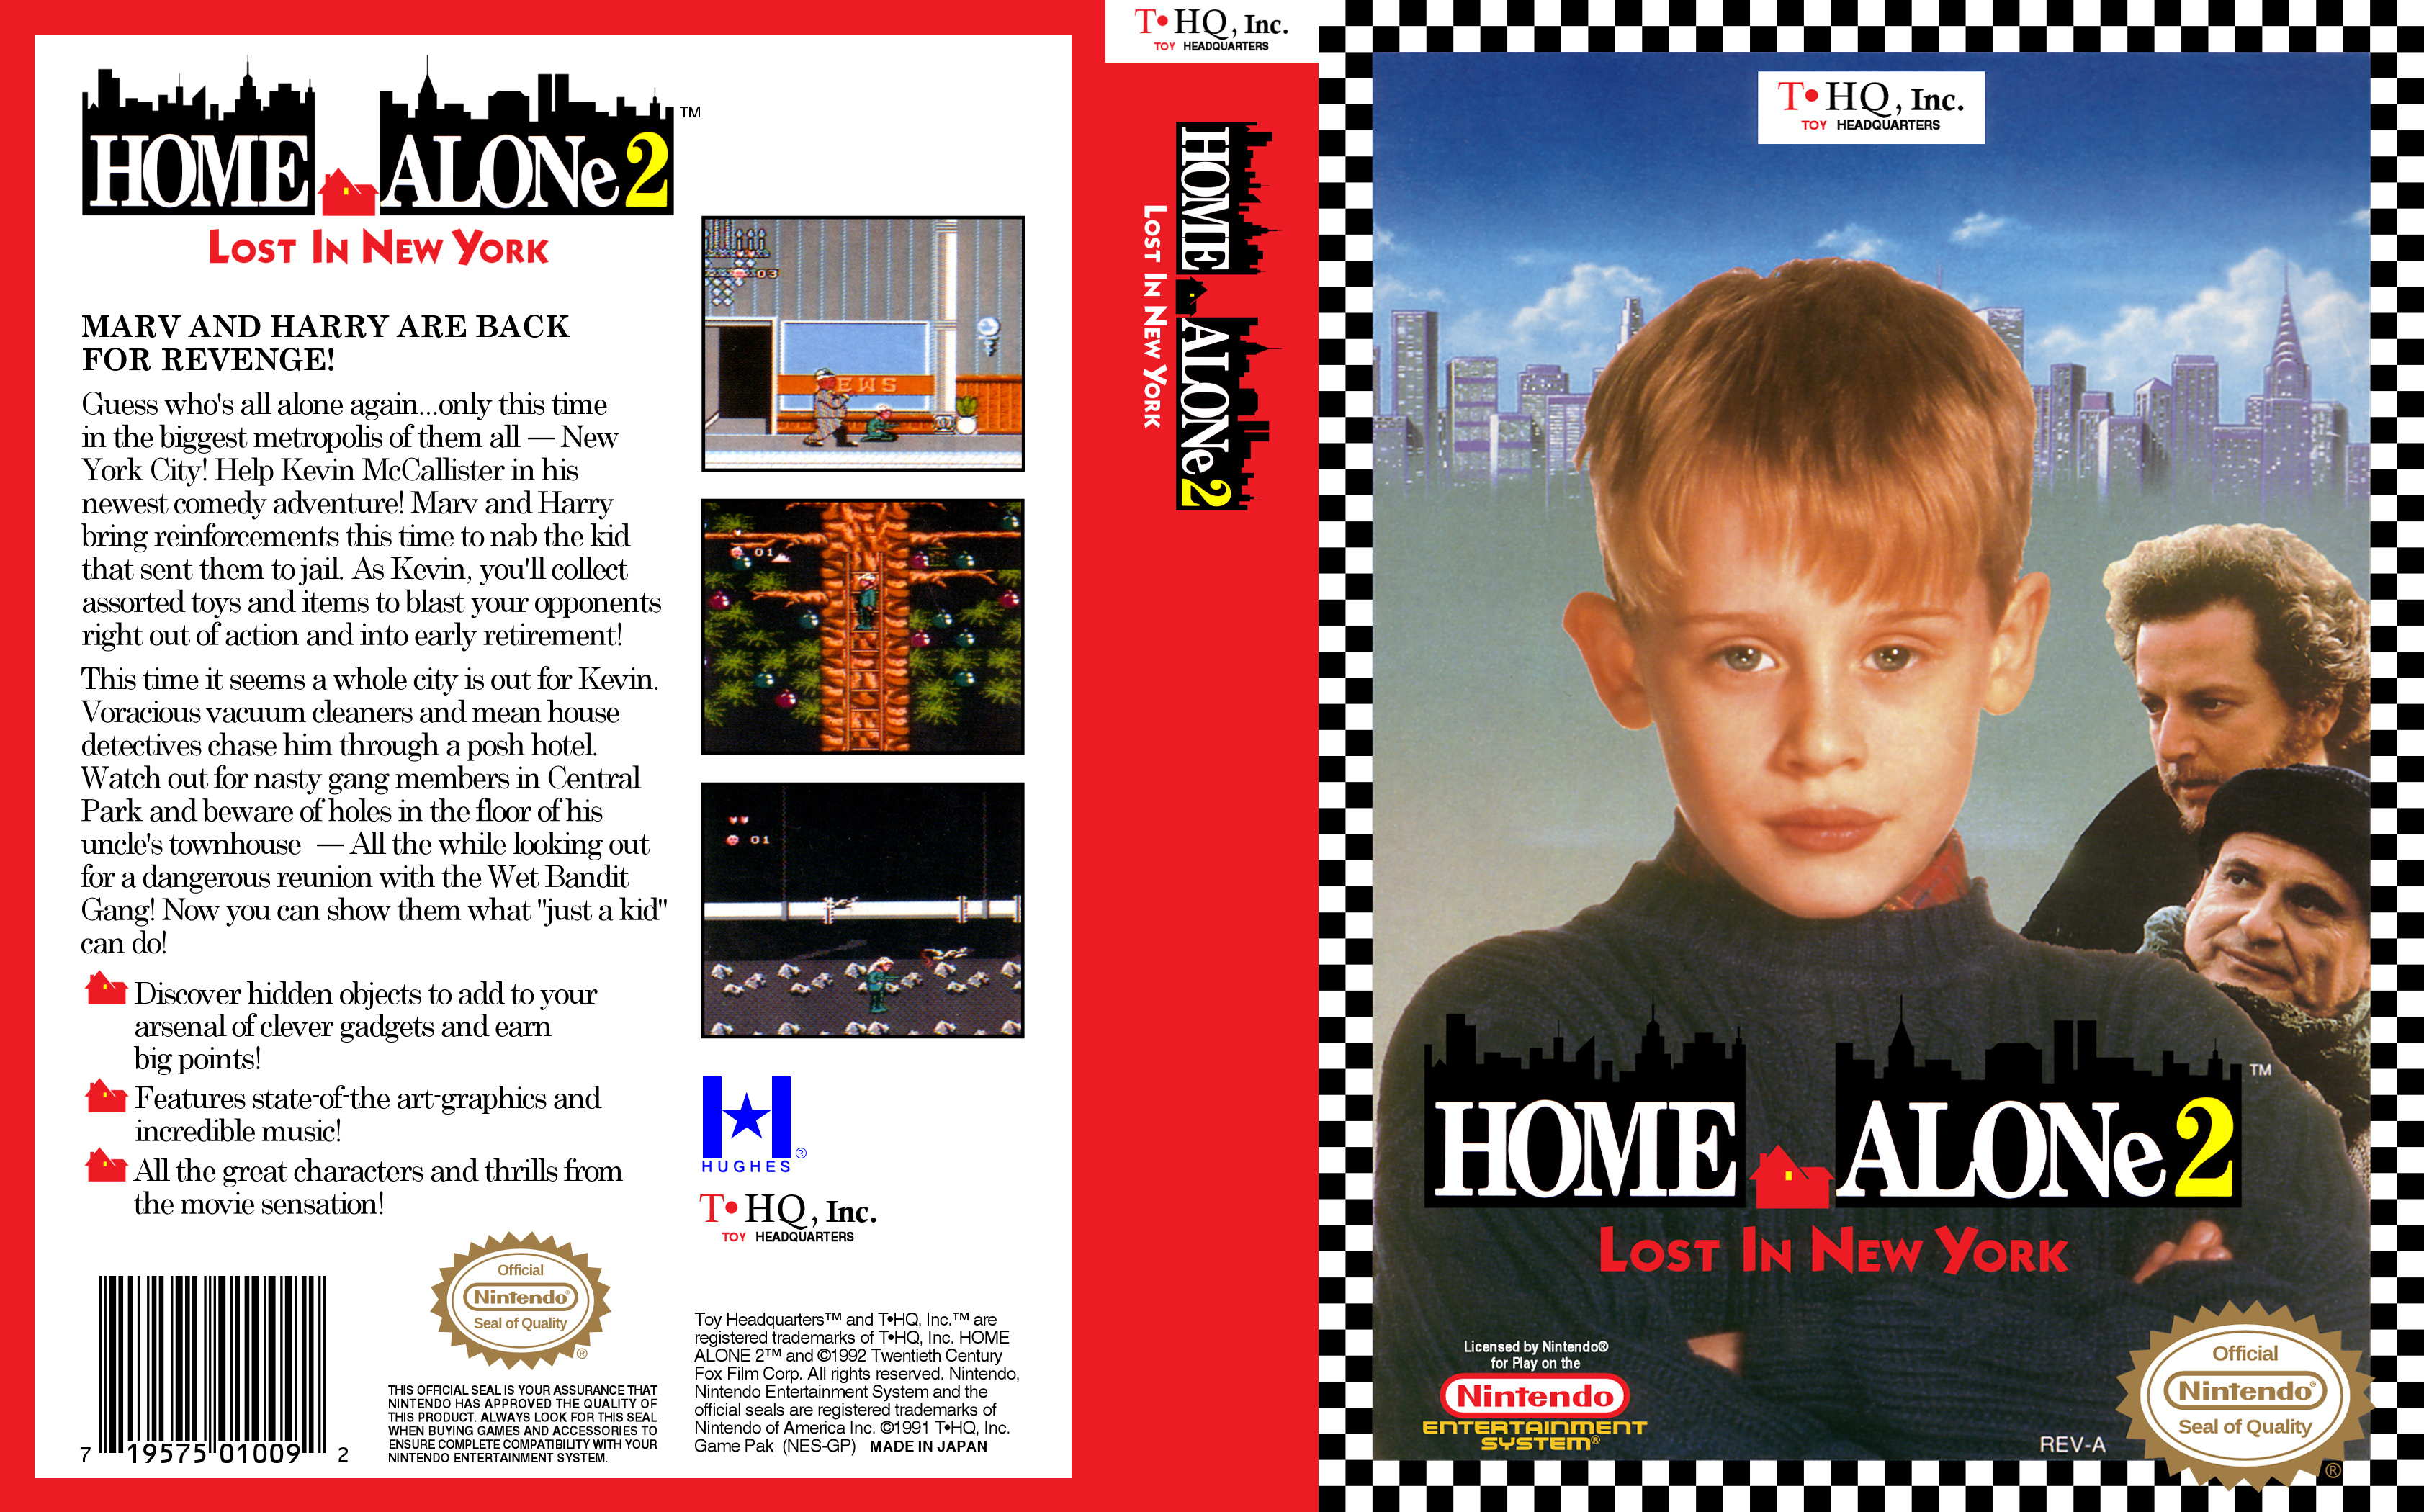 Horrny home alone games japenese